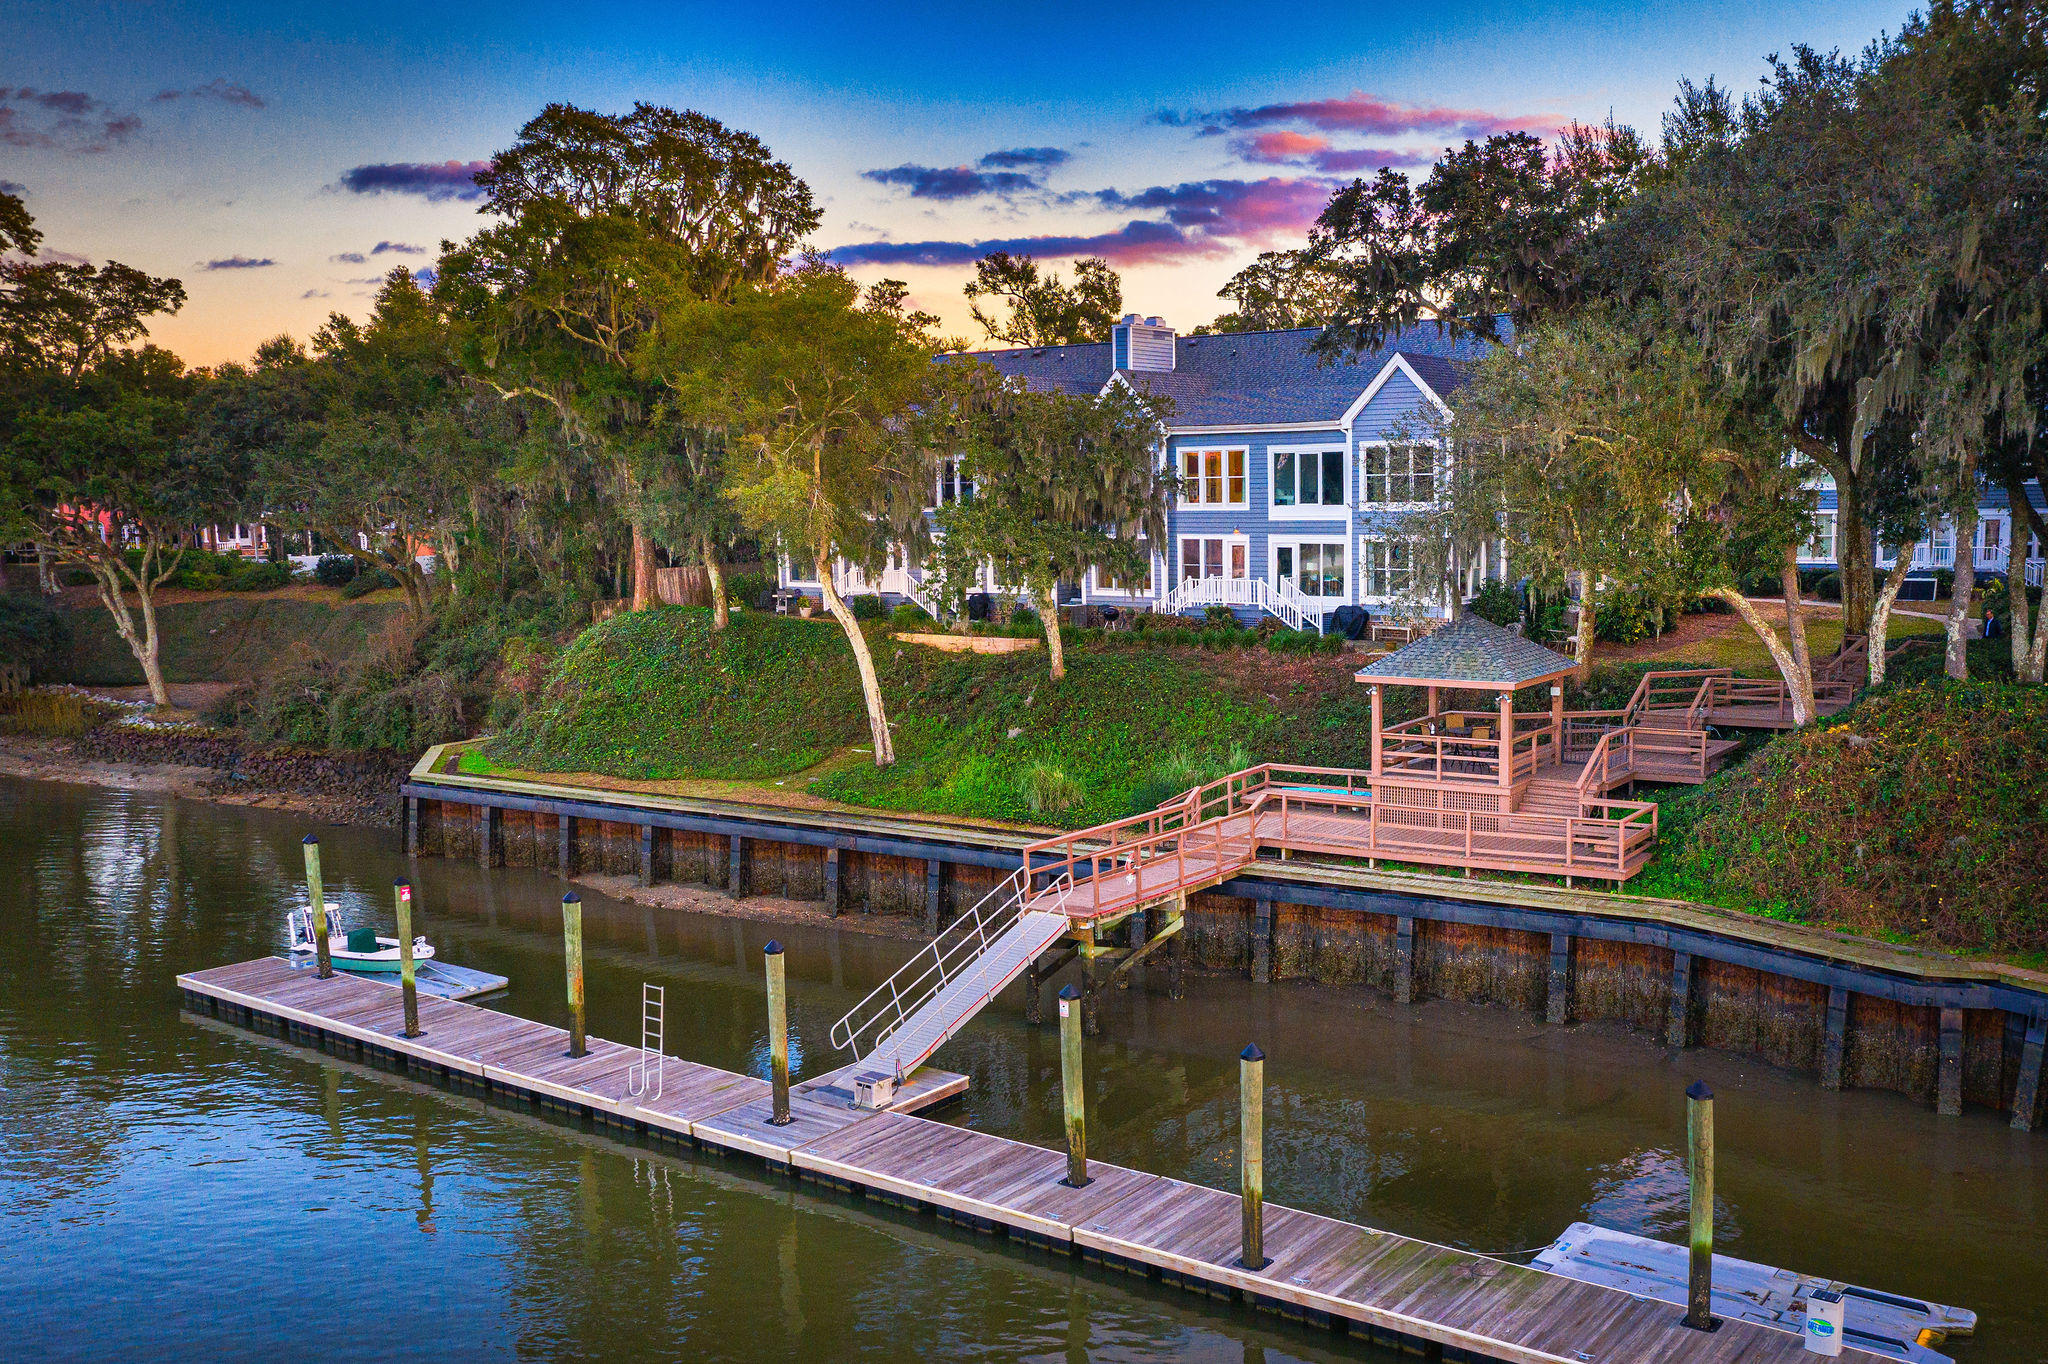 Waterfront Plantation Homes For Sale - 110 Waterfront Plantation, Charleston, SC - 51